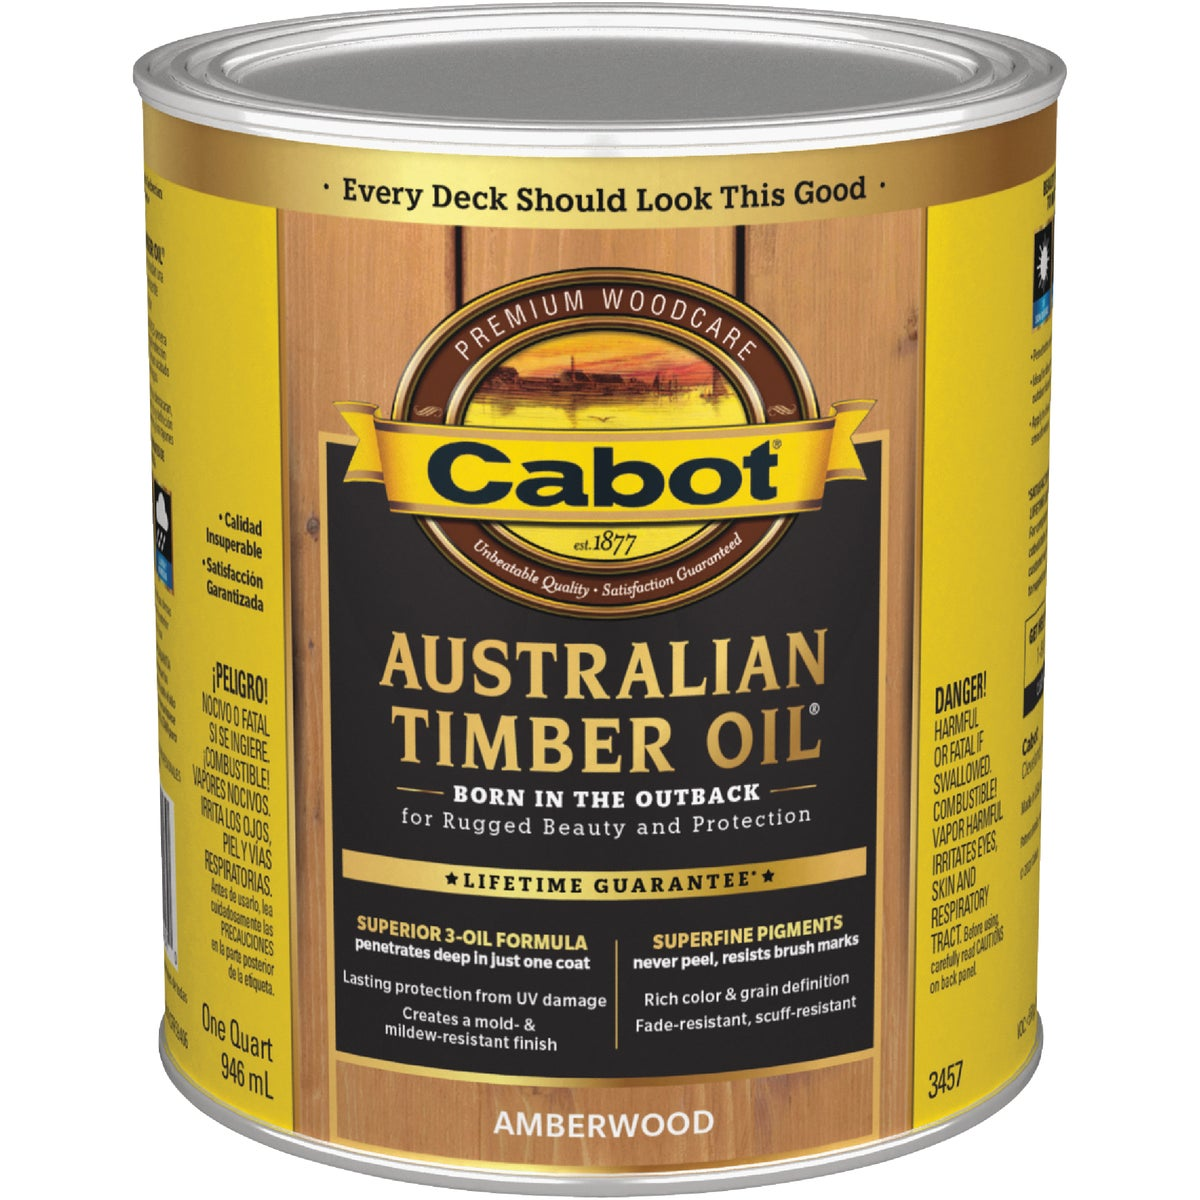 AMBRWD TIMBER OIL FINISH - 140.0003457.005 by Valspar Corp